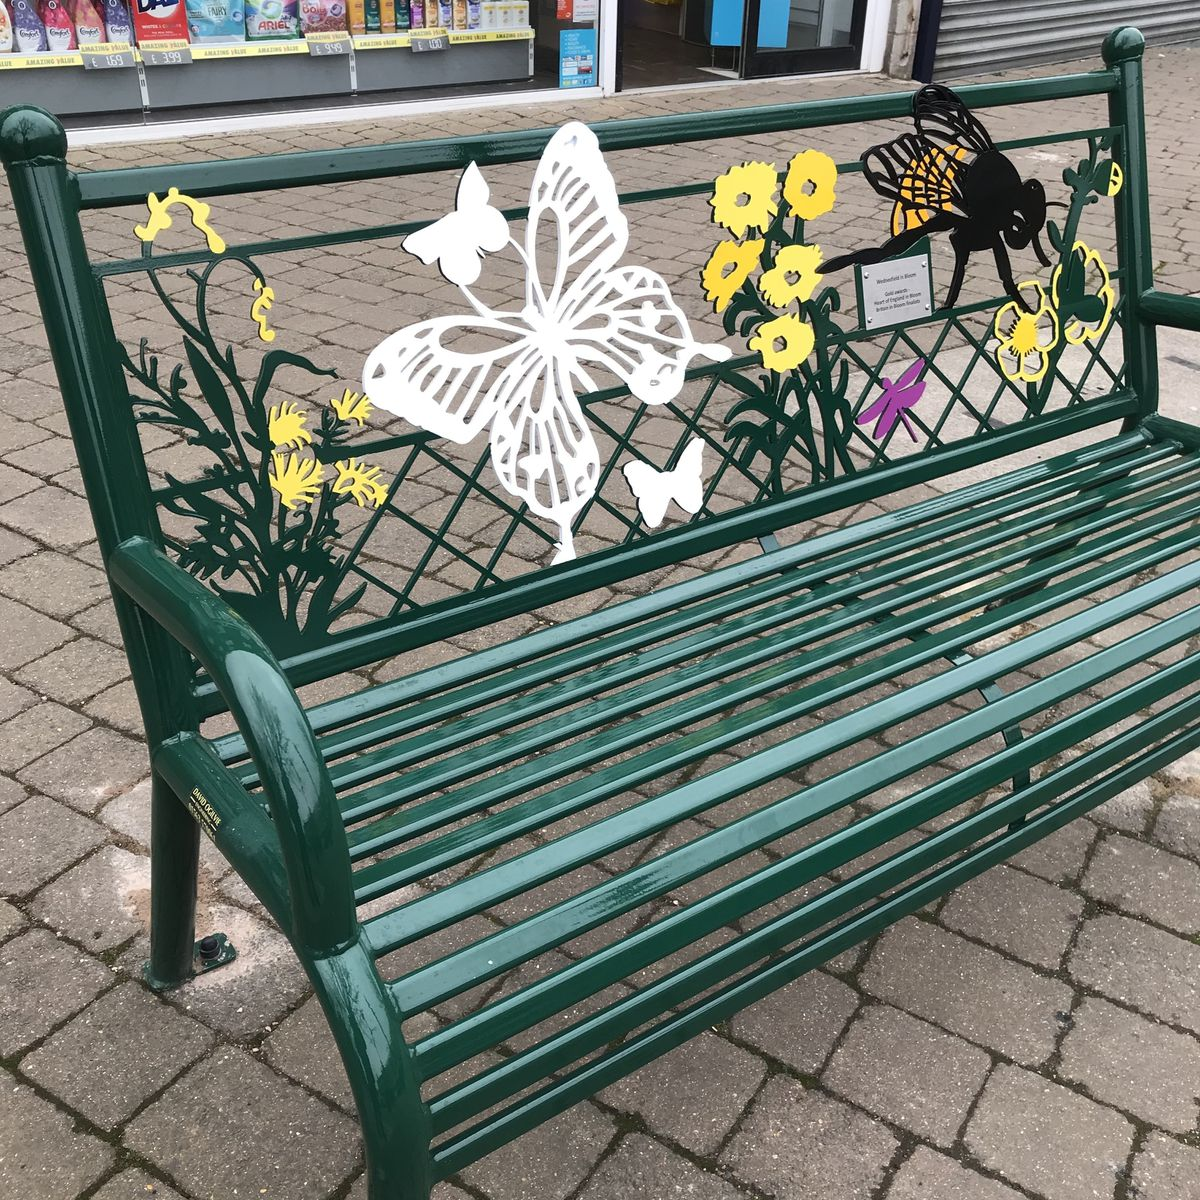 One of the new benches installed in Wednesfield